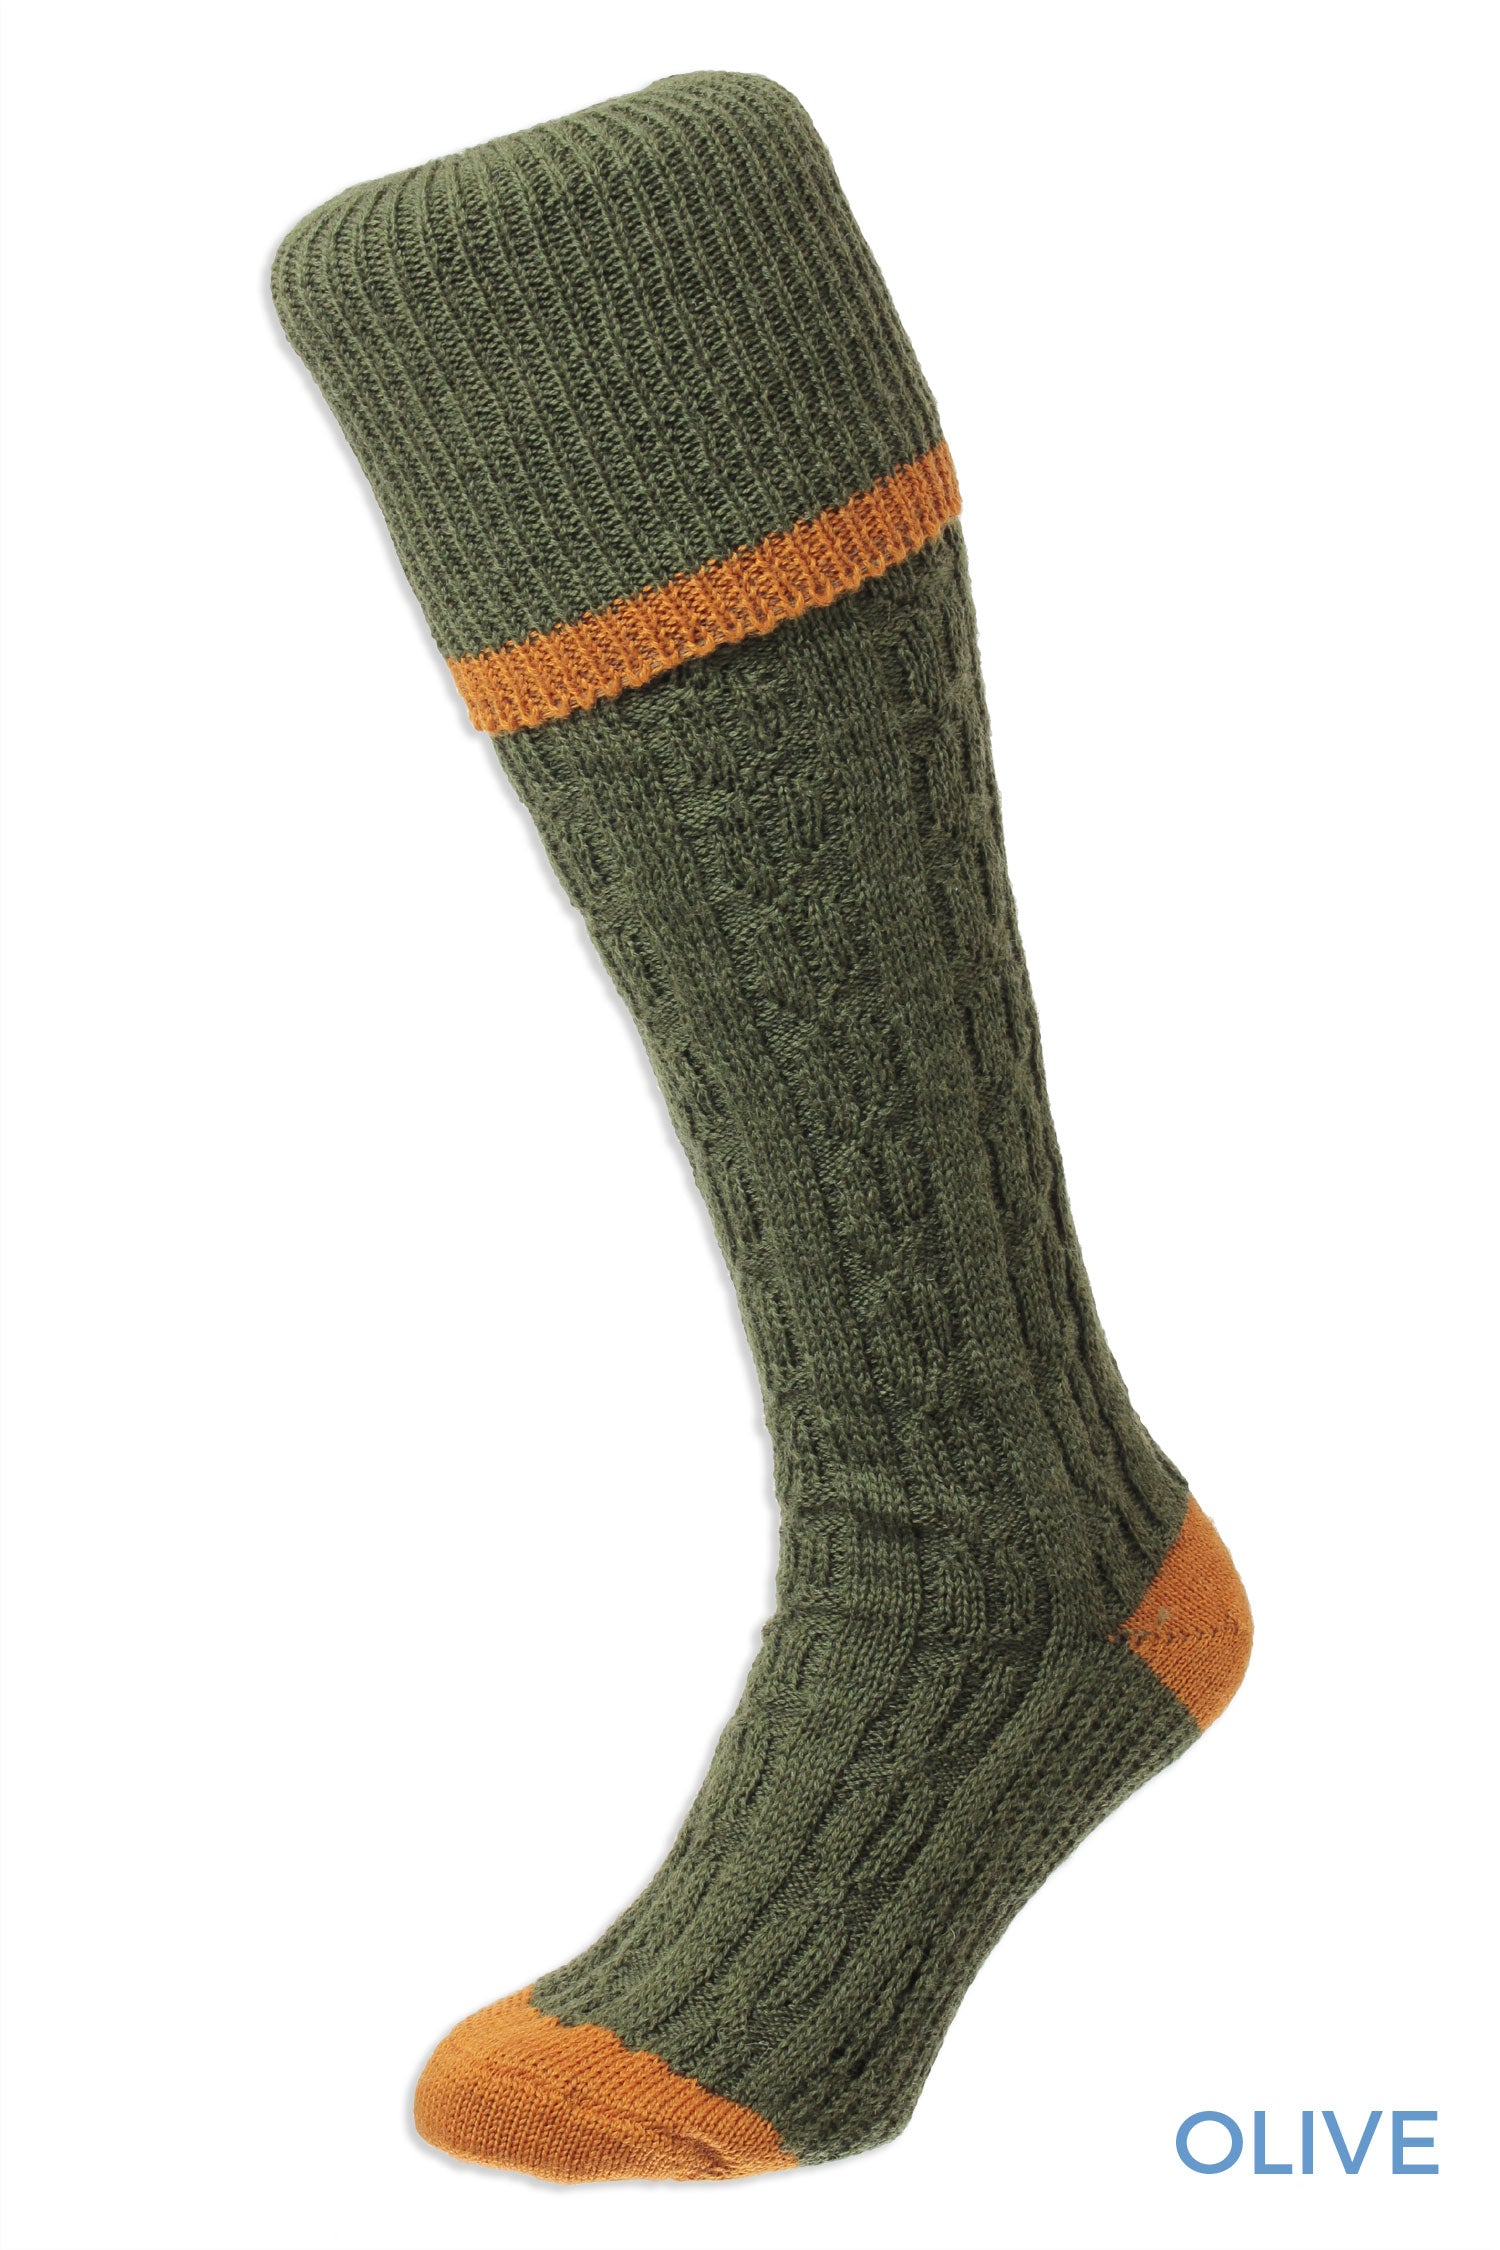 Greenolive and orange Cable Stripe Long Country Sock by HJ Hall